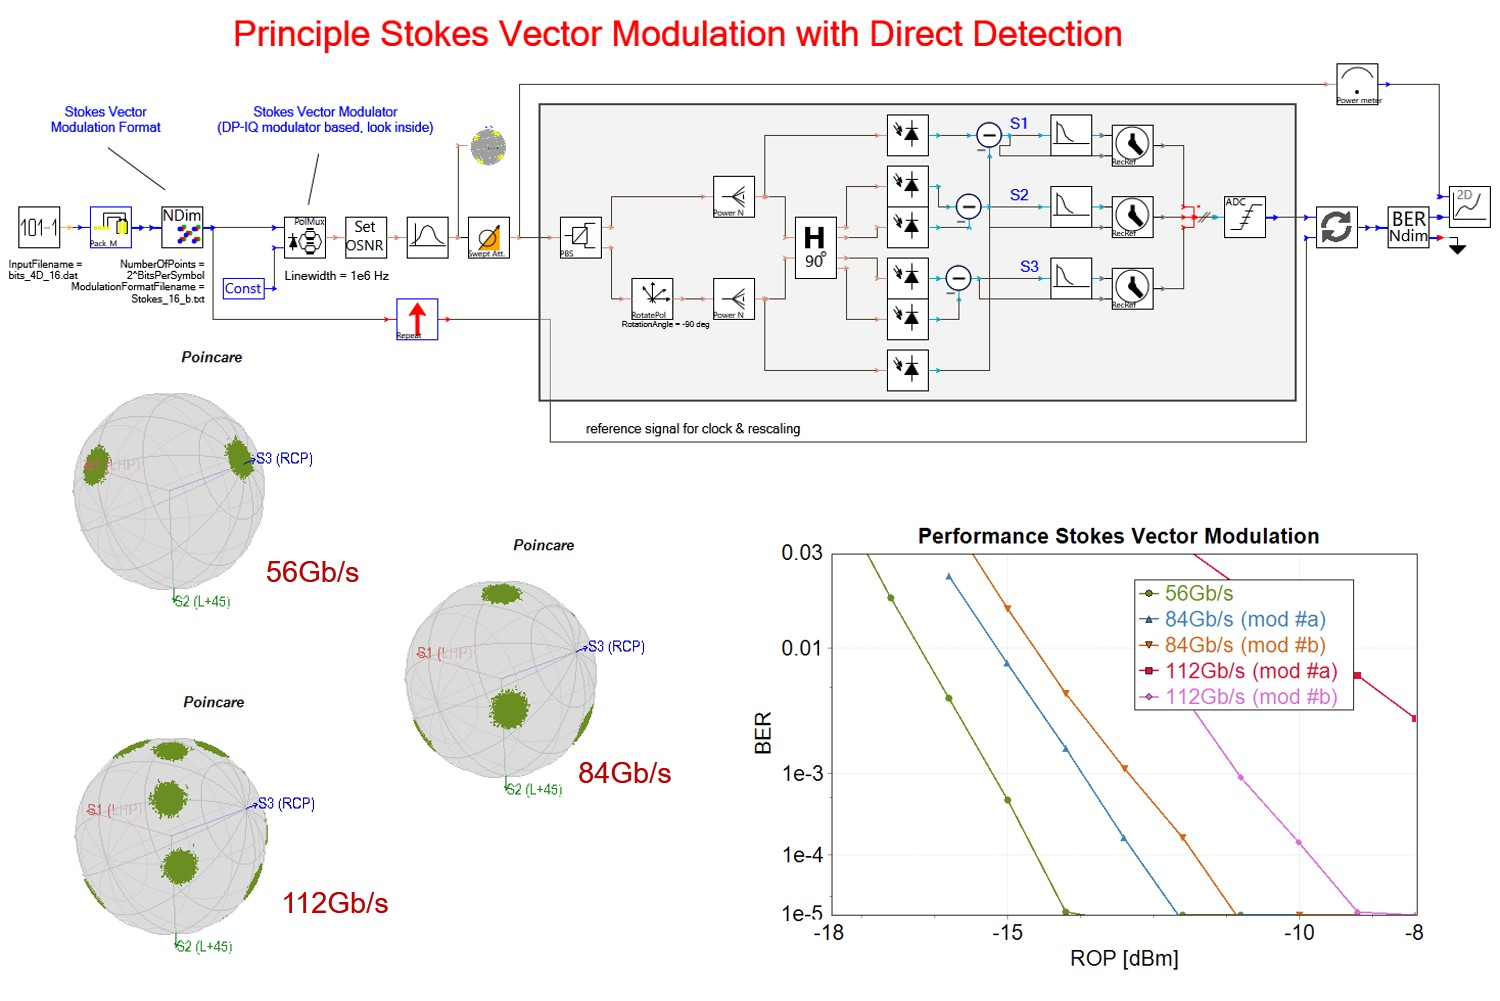 Simulation setup & results for Principle Stokes Vector Modulation with Direct Detection